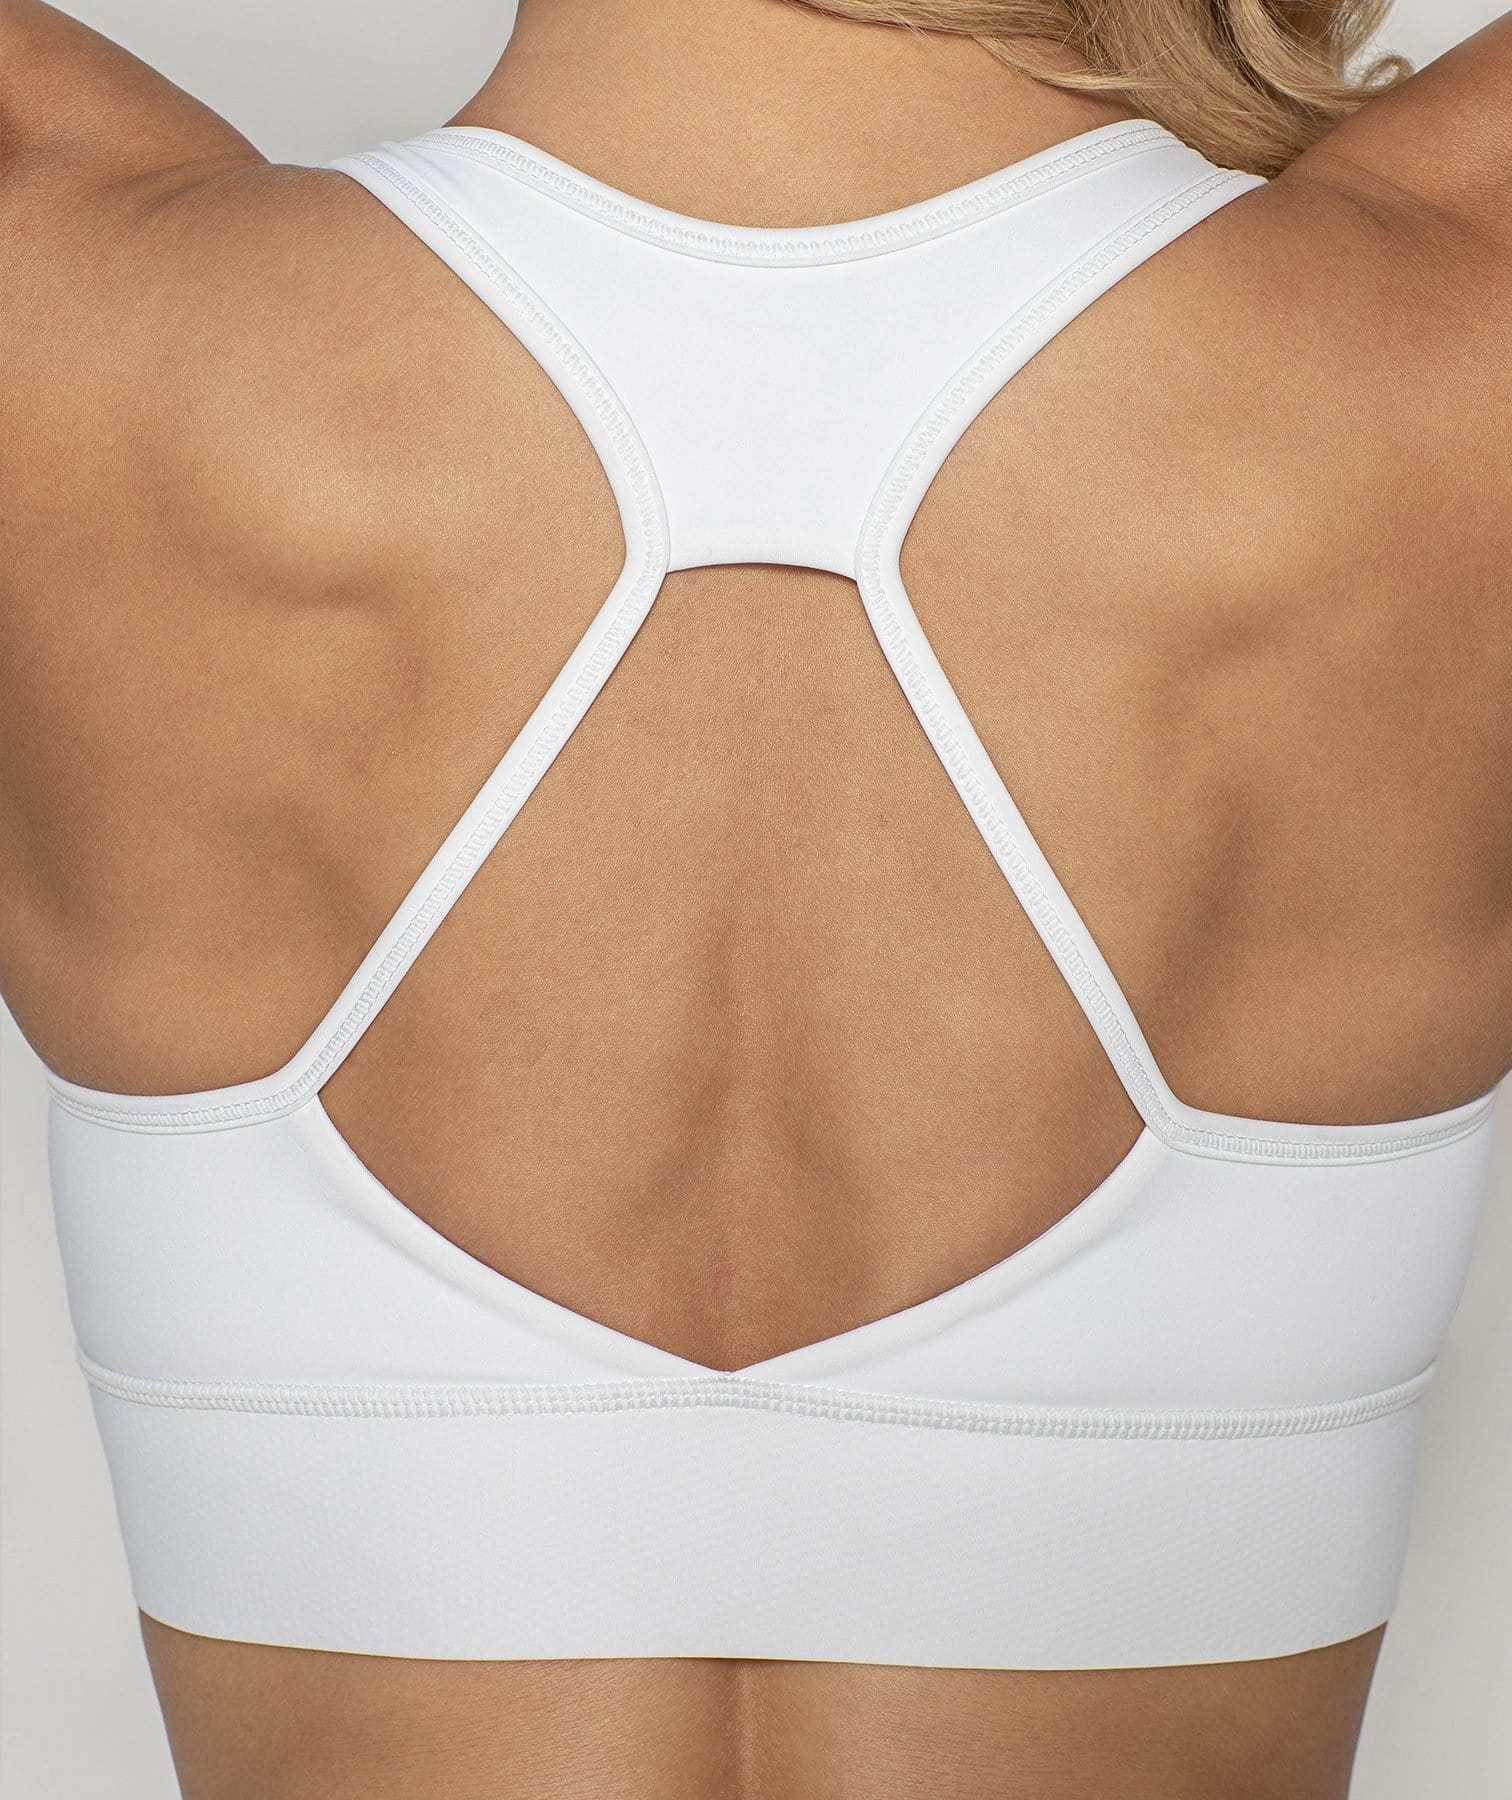 X-power Zip Up Sports Bra - White - Firm Abs Fitness